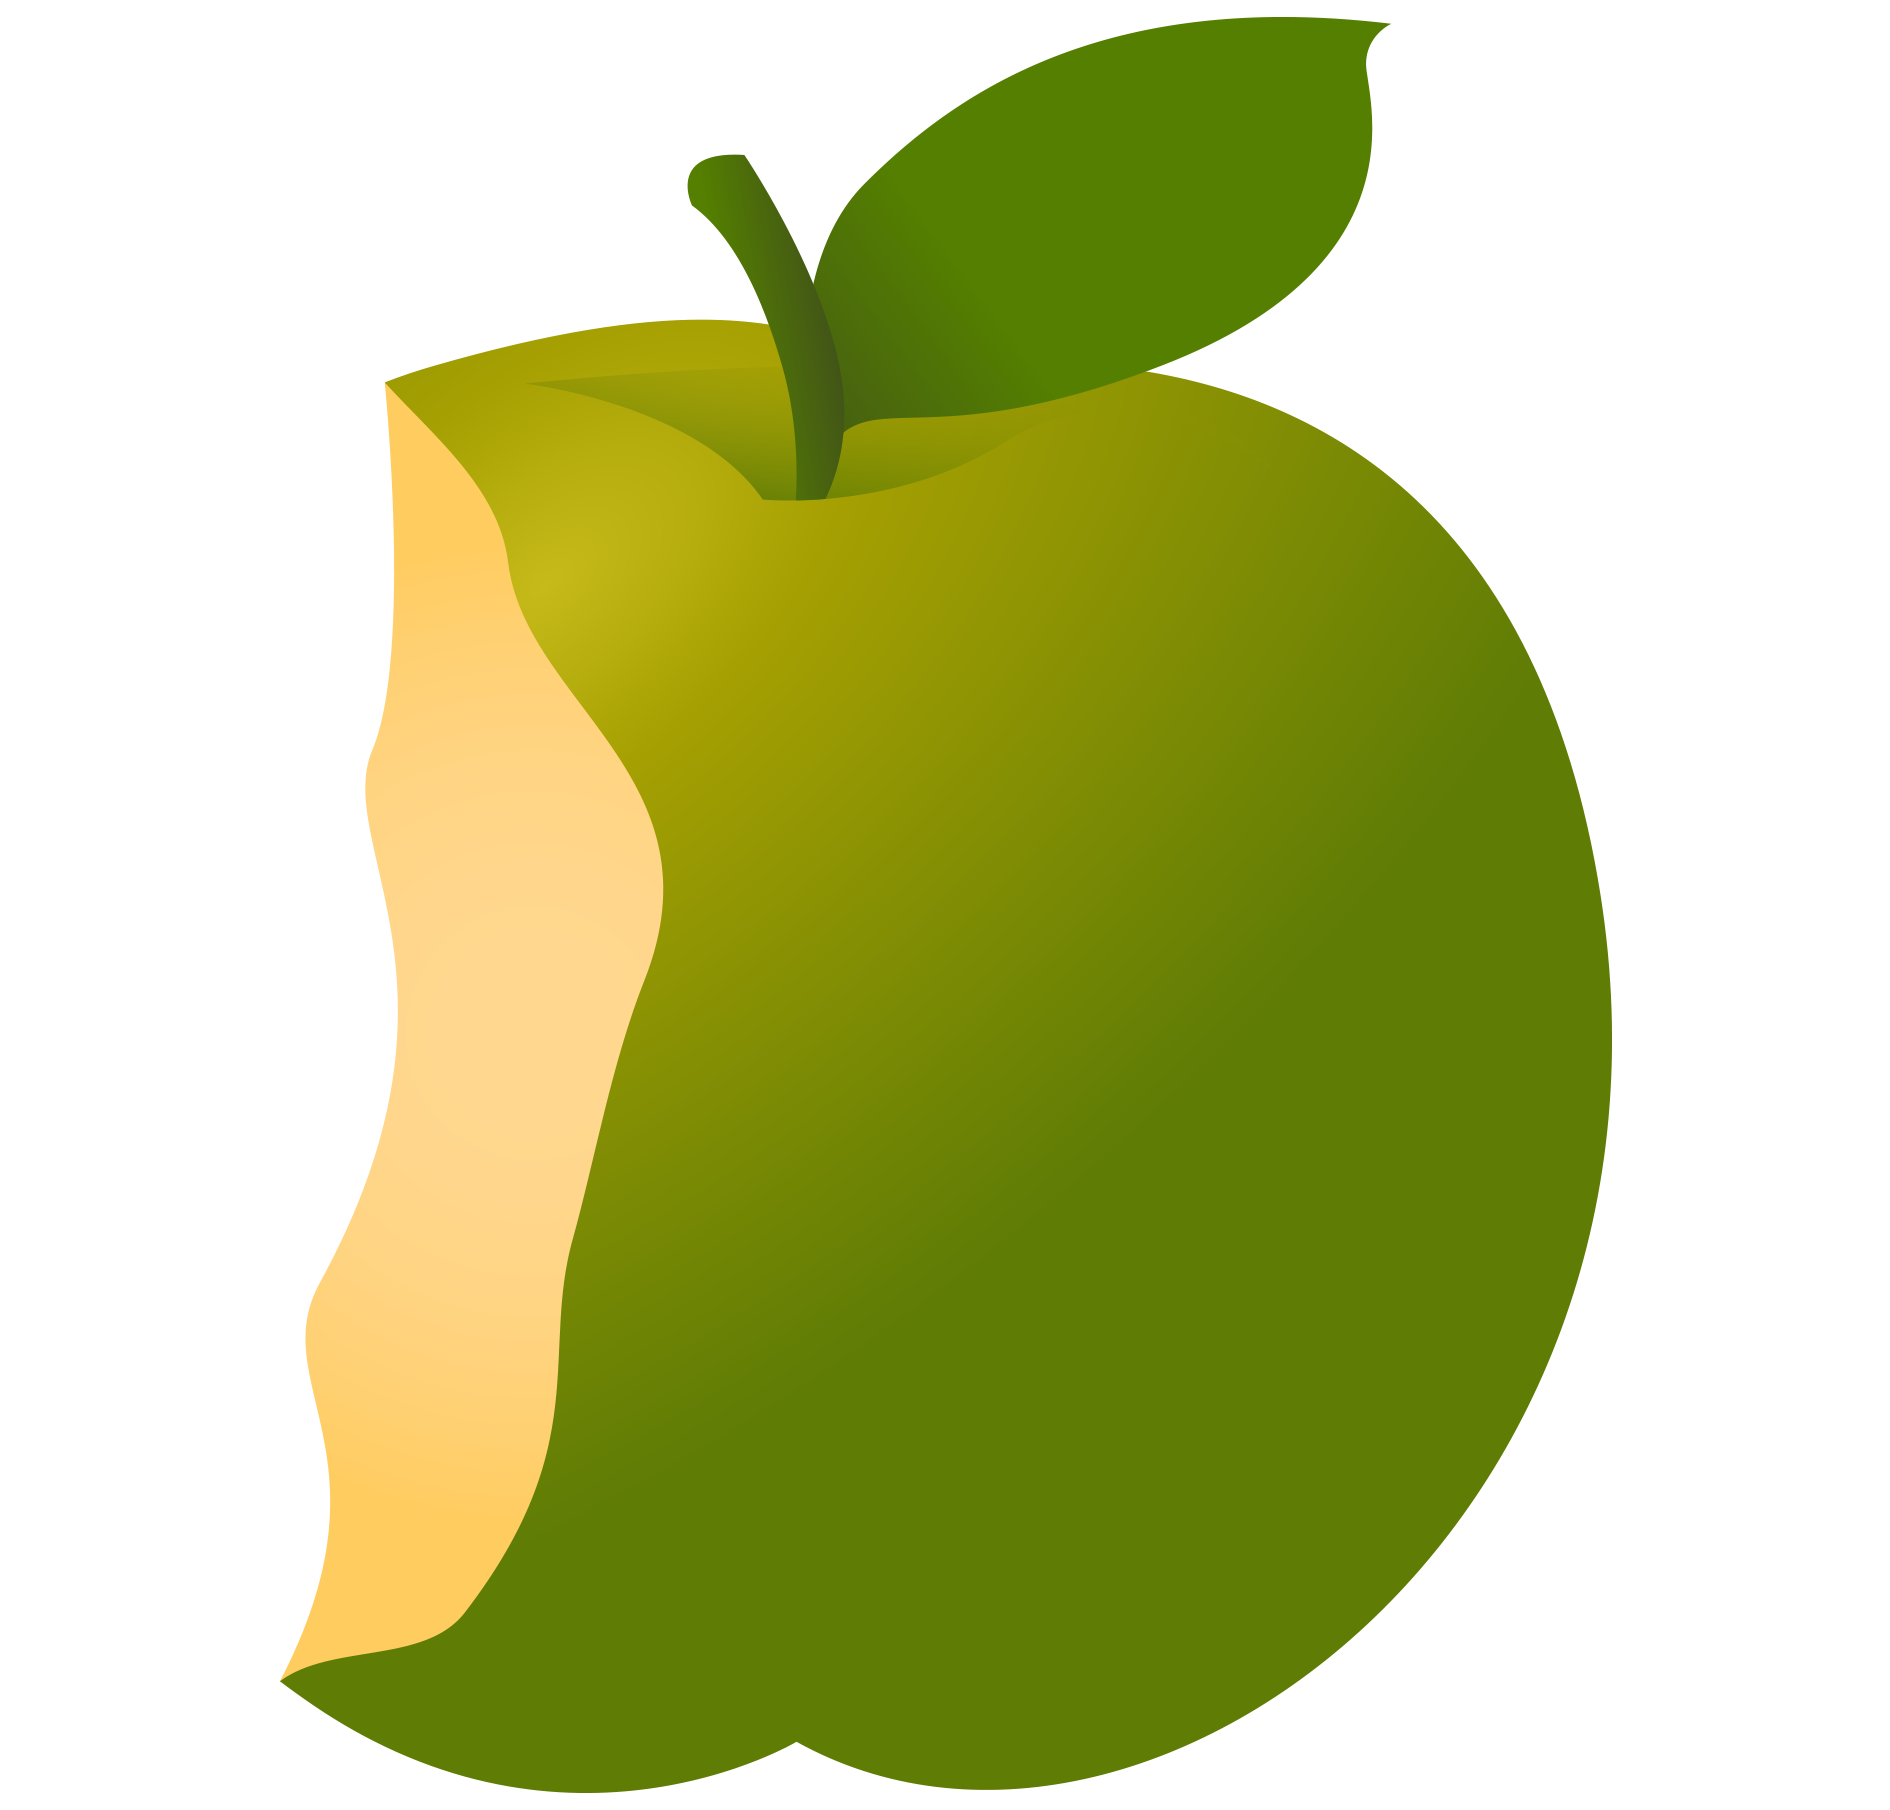 Health clipart healthy cooking. View apple bite png